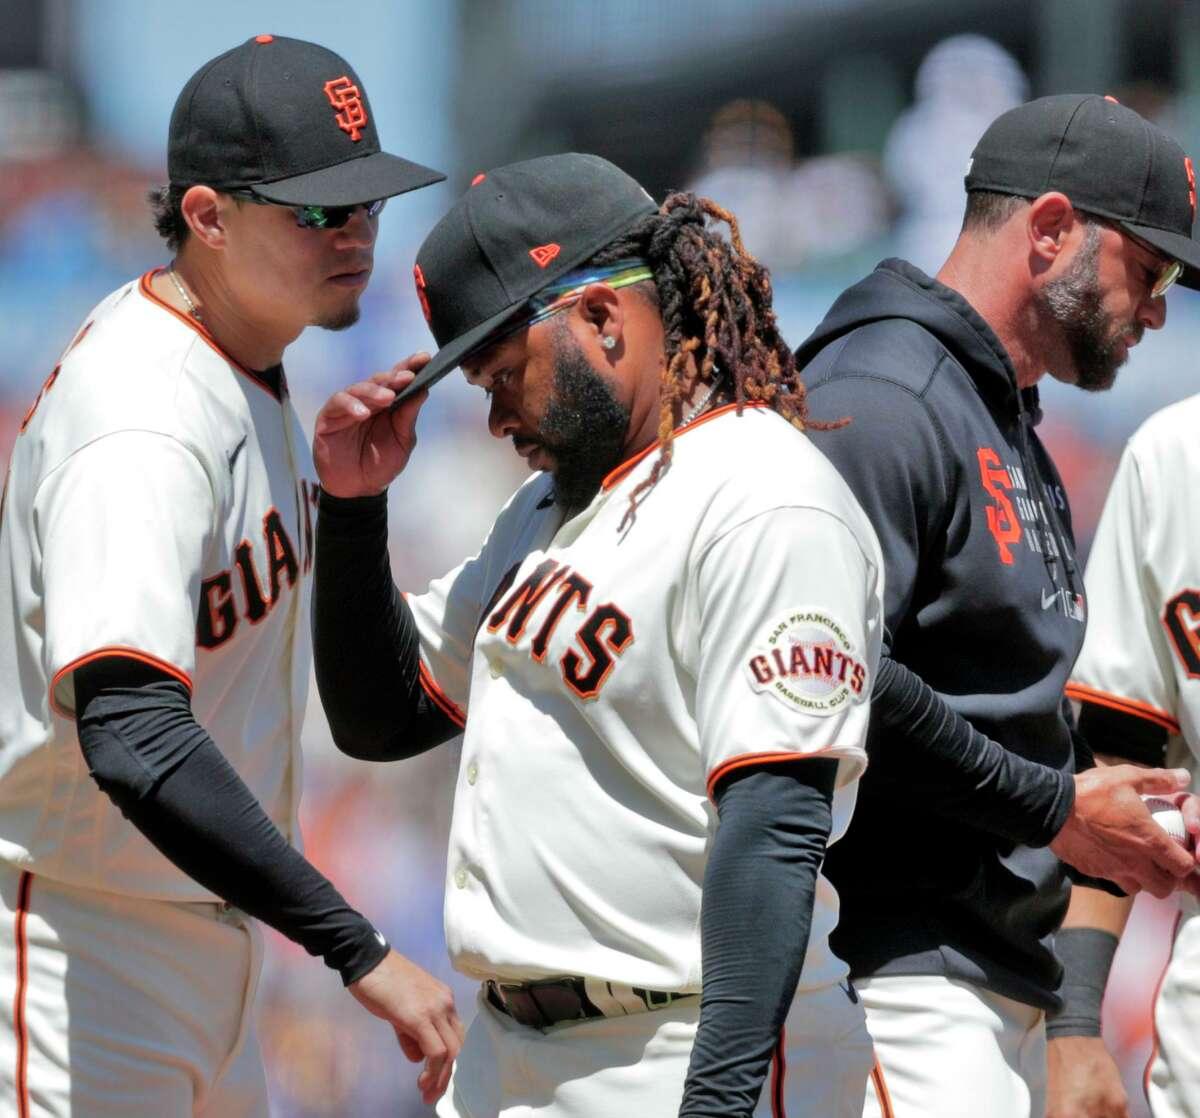 Giants starter Johnny Cueto starter was placed on the 10-day injured list with a flexor strain and might miss one or two starts.